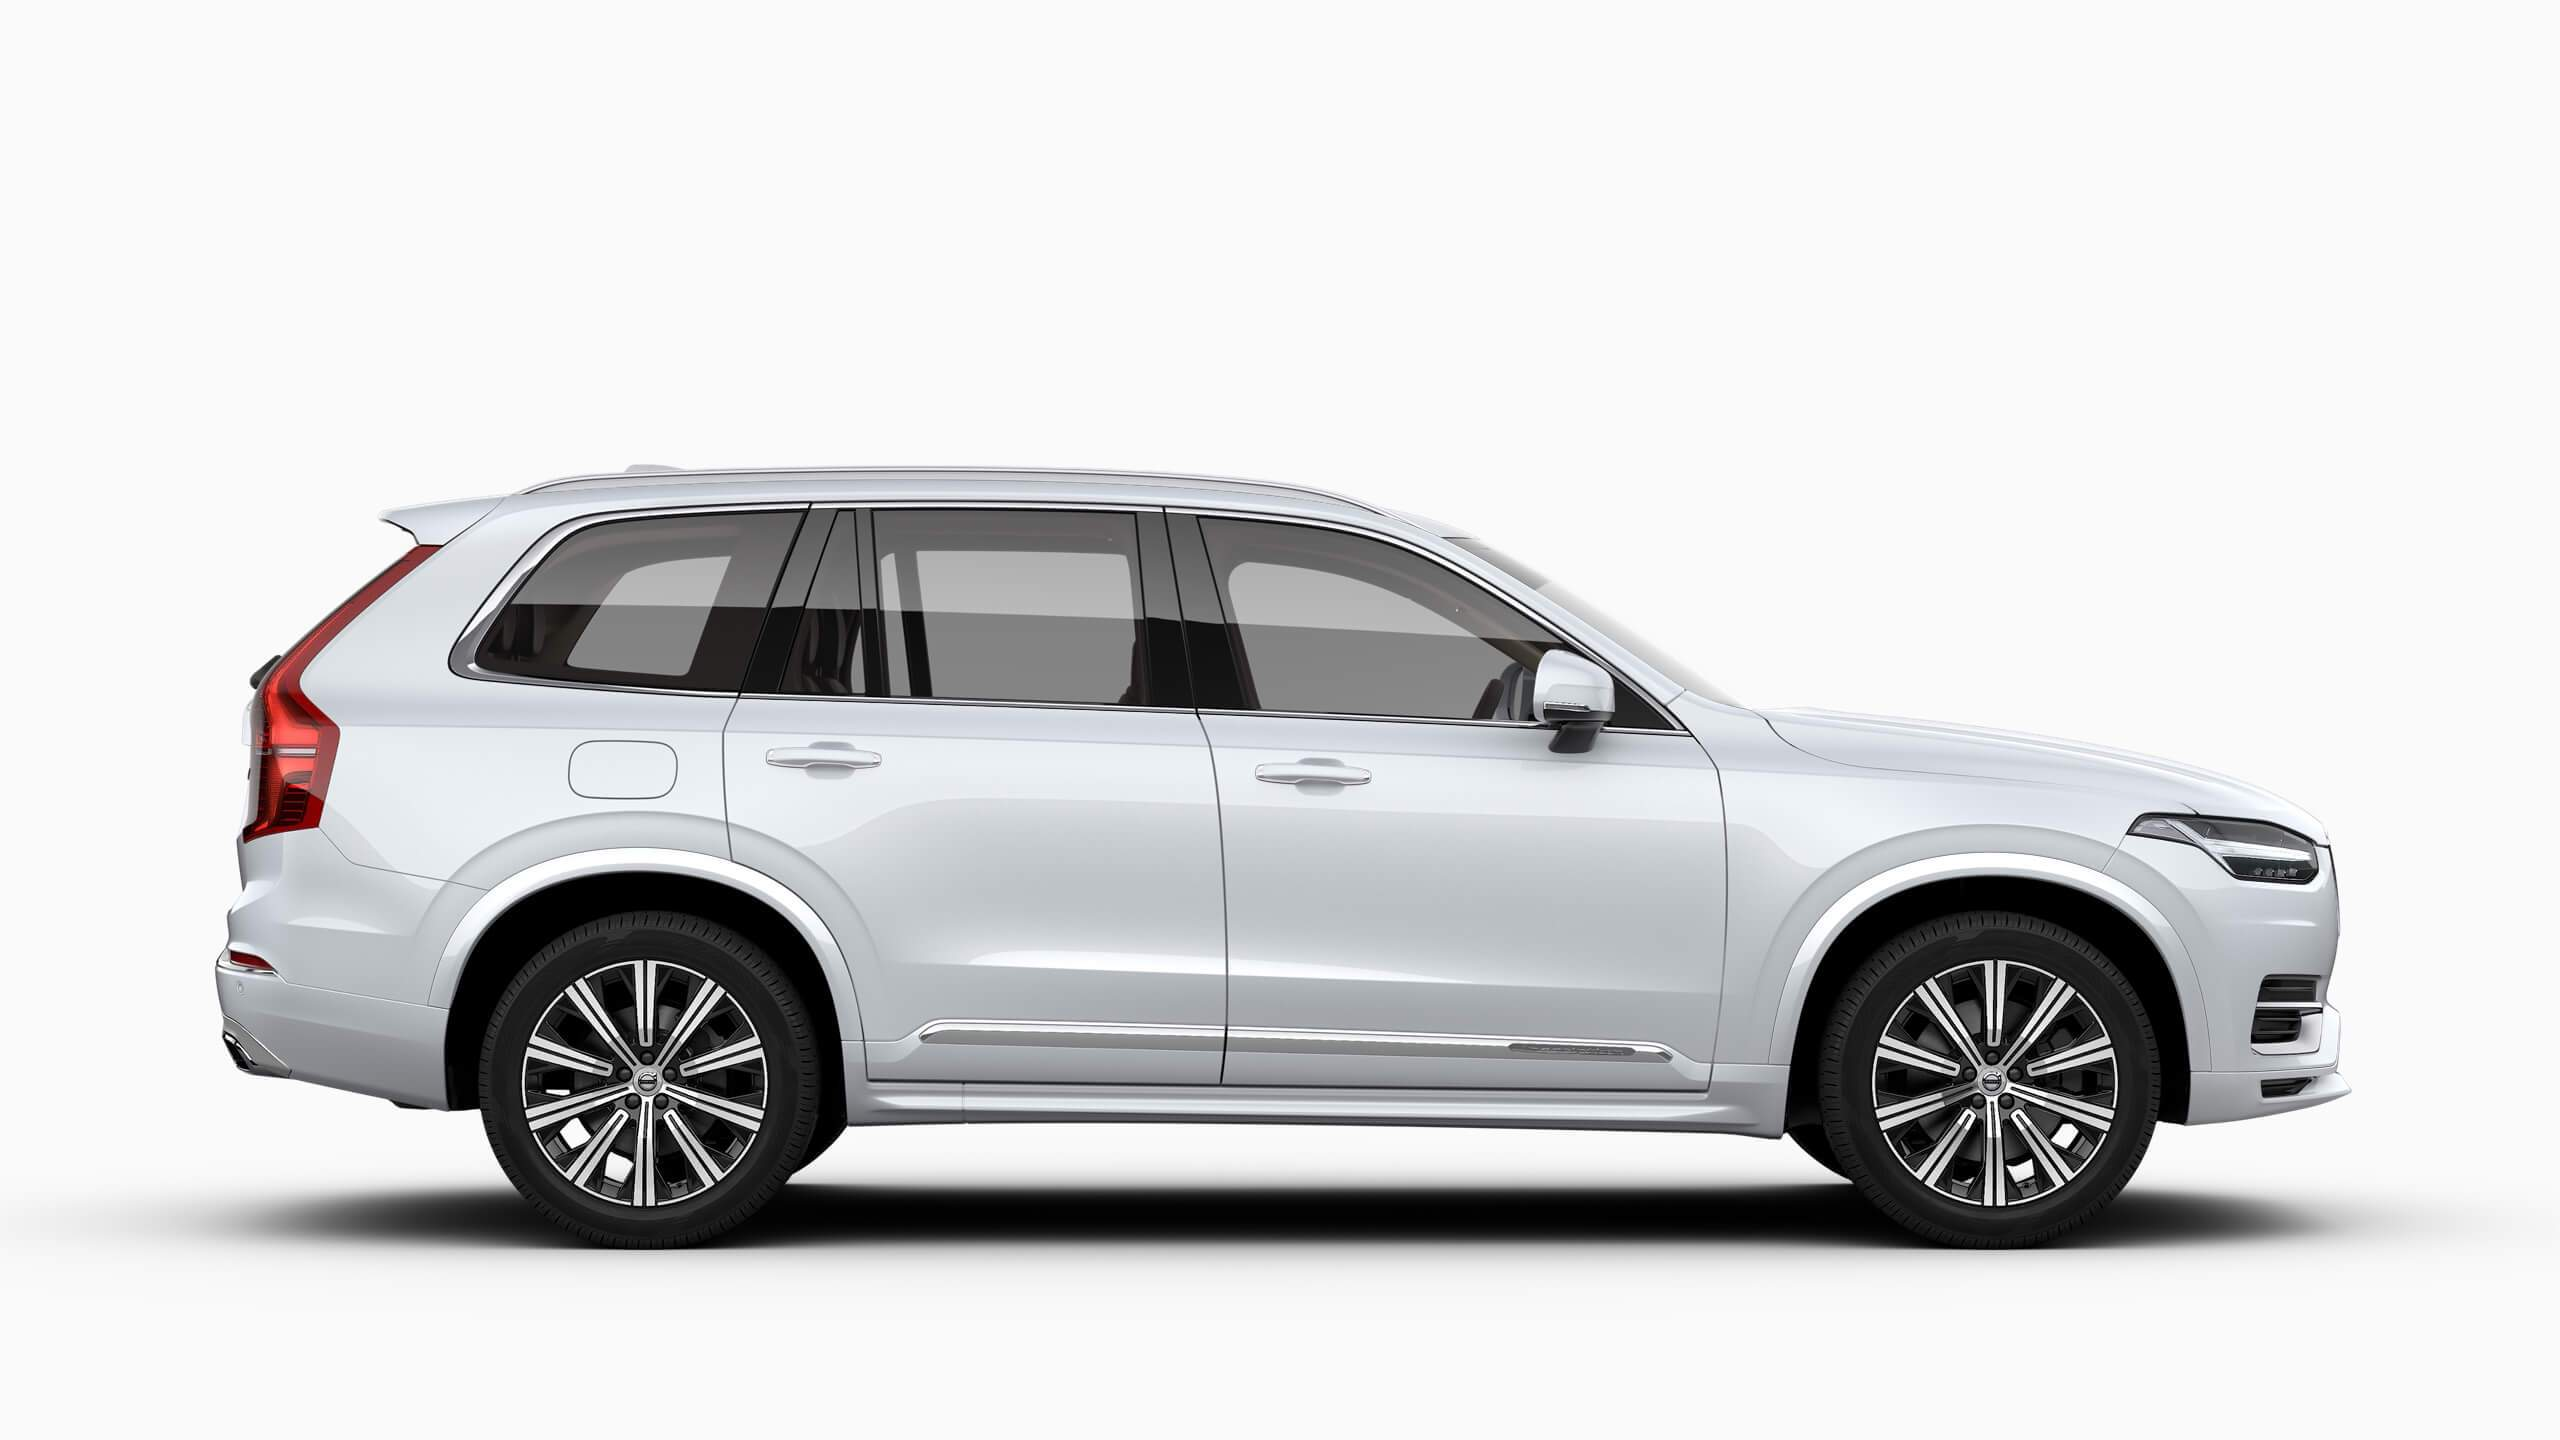 01_Crystal_White_pearl_707_XC90